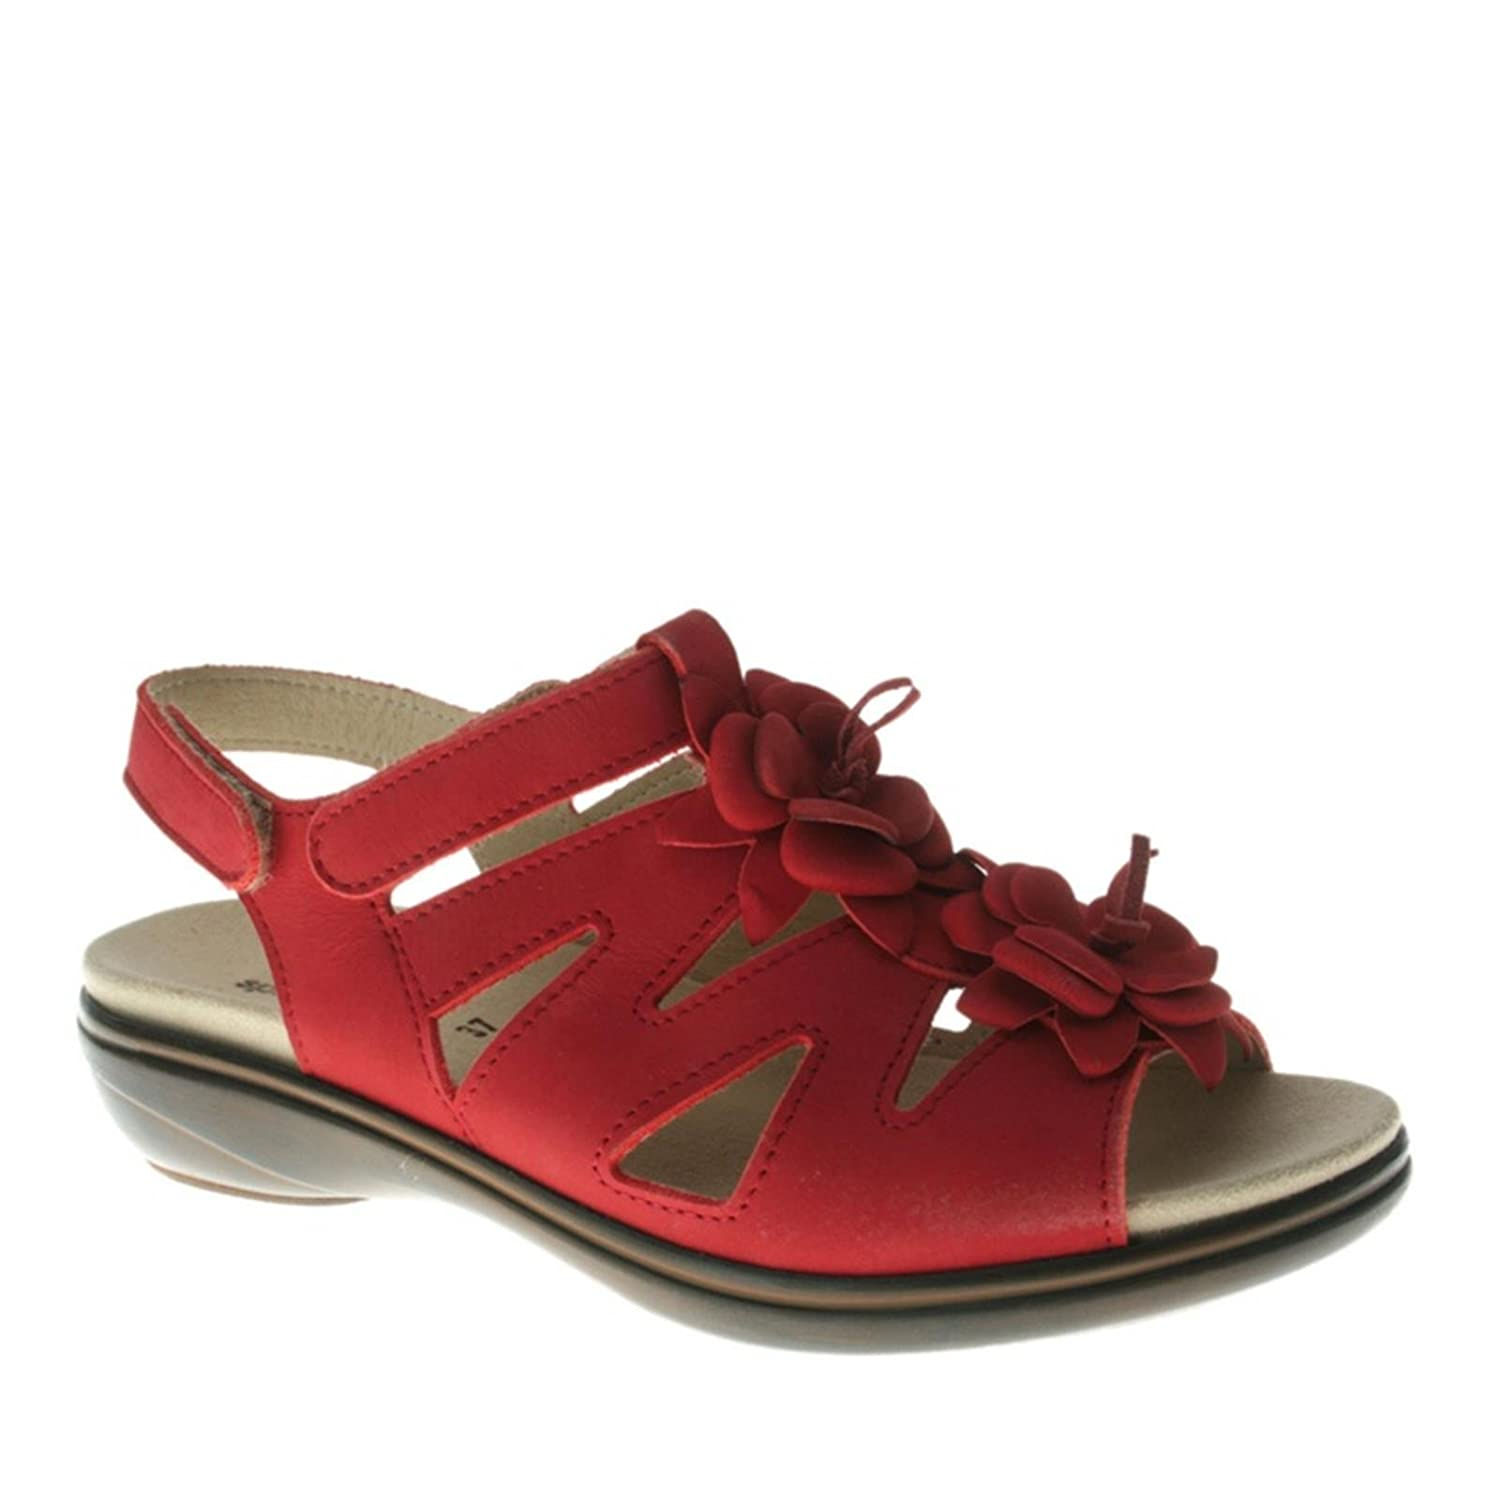 Spring Step Women's Tressie Strappy Sandals B00B5H8AZY 39 M EU|Red